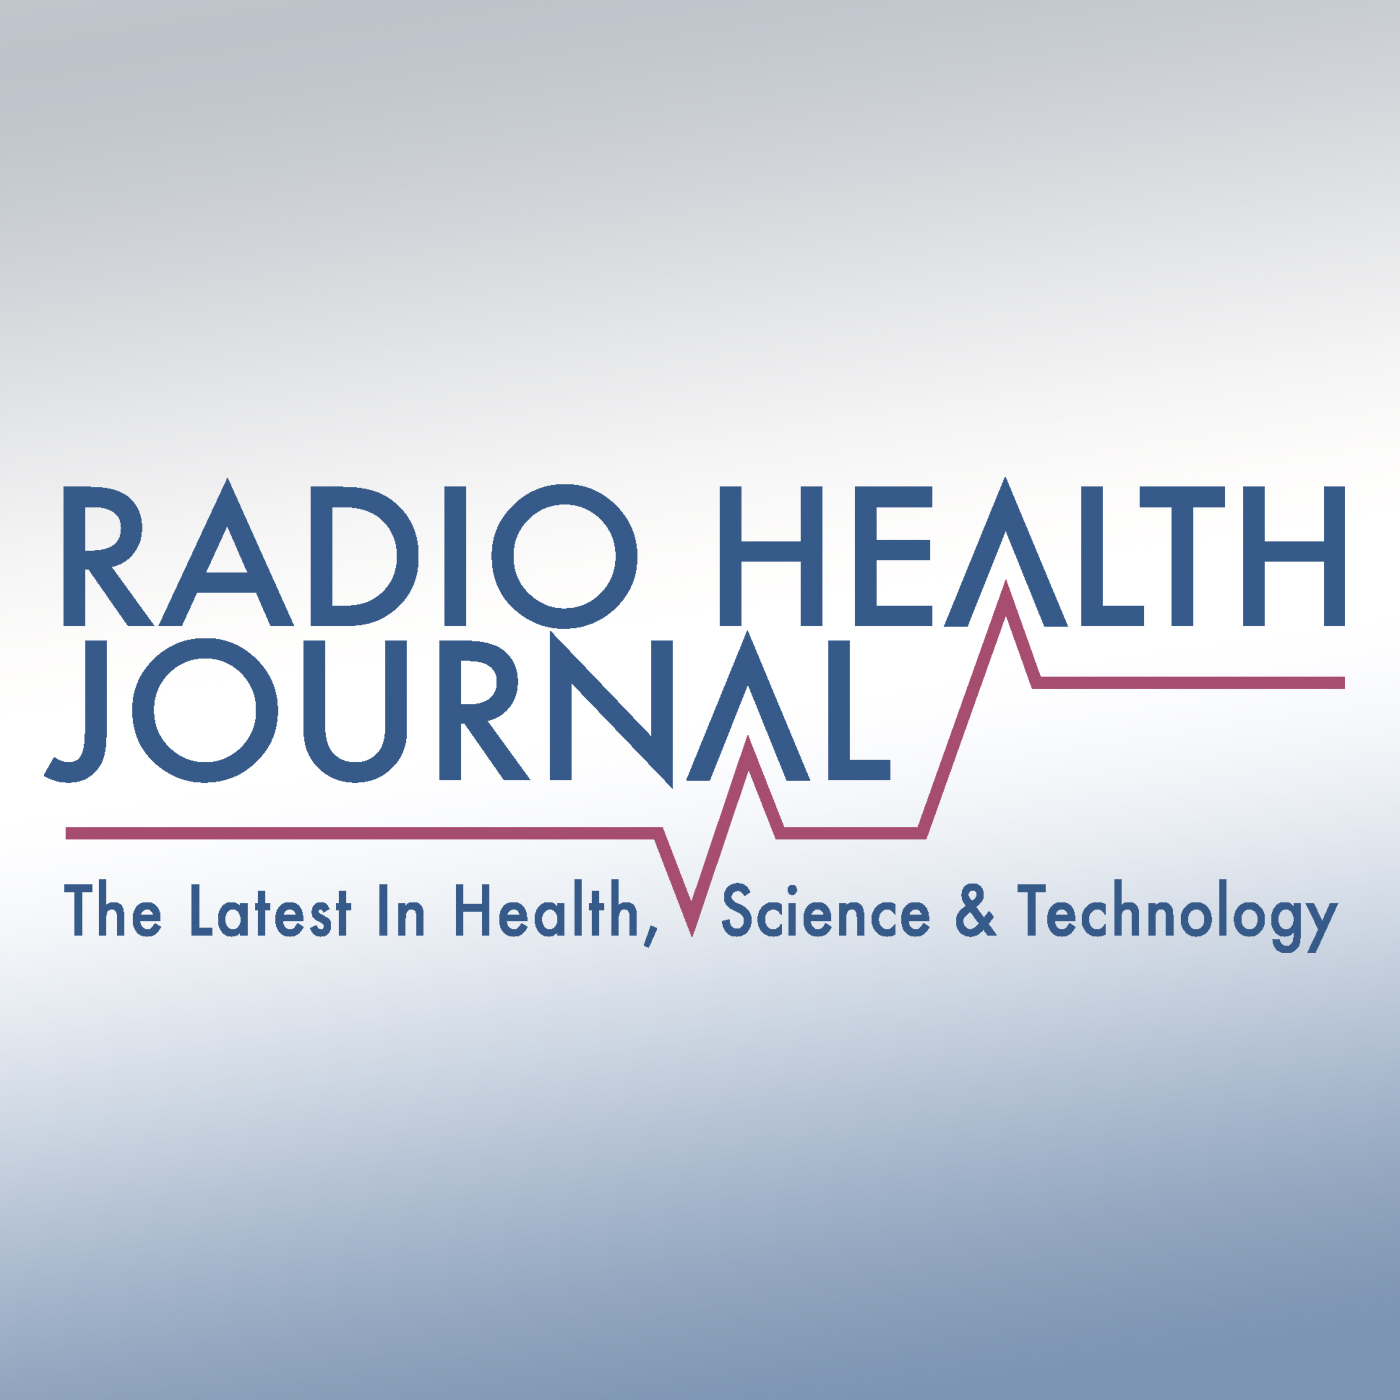 Radio Health Journal